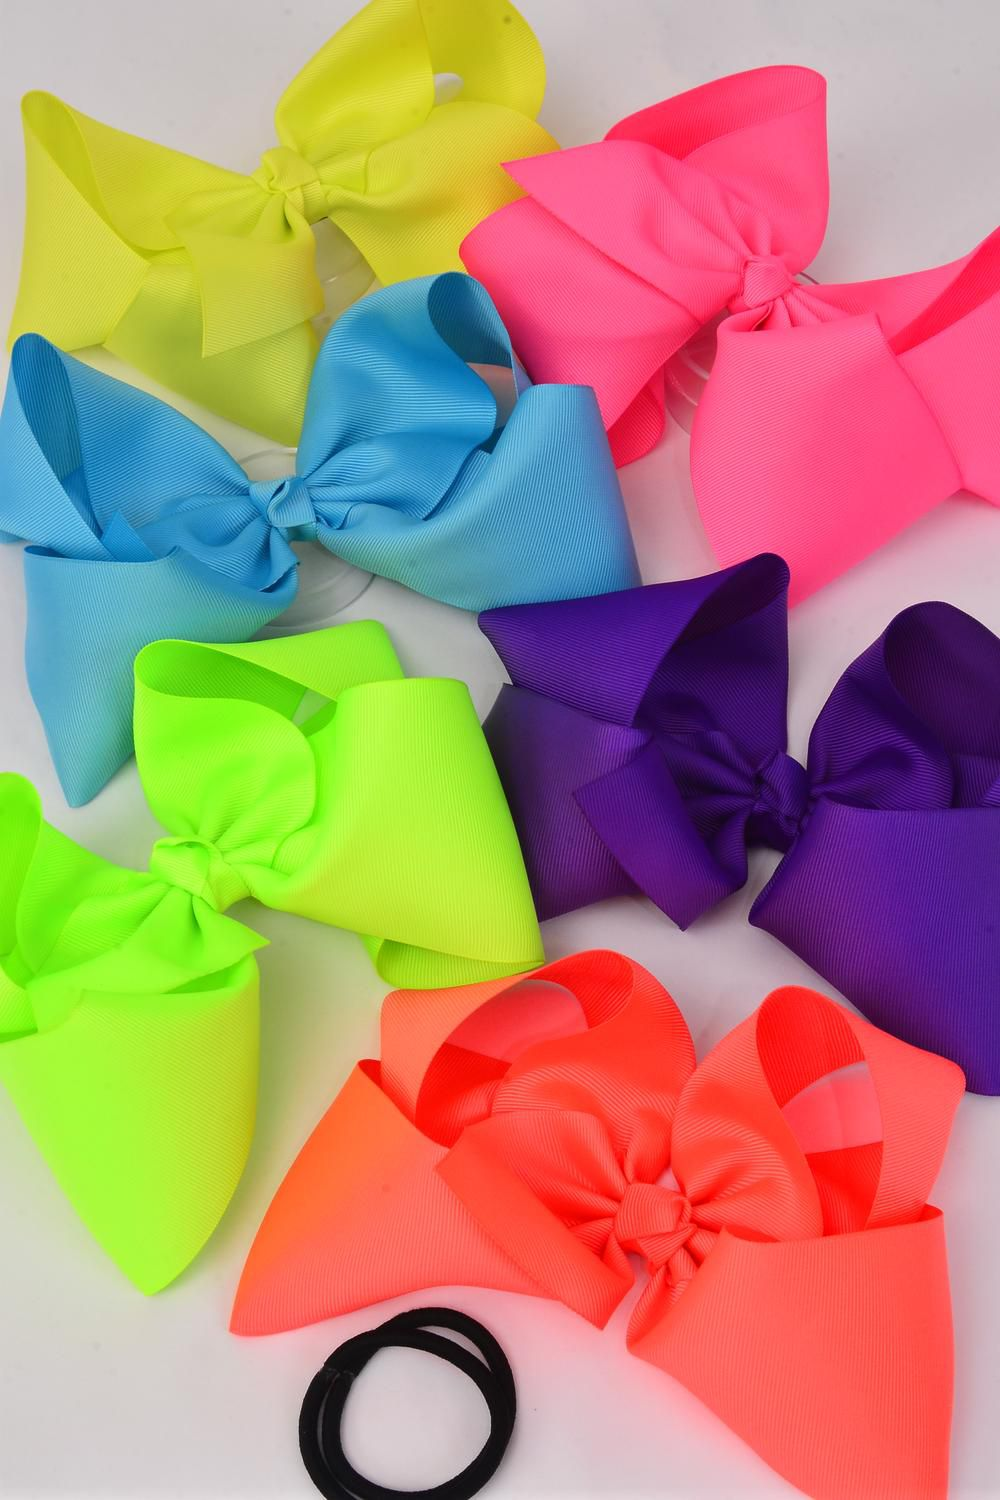 "Hair Bow Cheer Type Bow Caribbean Elastic Pony Grosgrain Bow-tie/DZ **Caribbean** Size-8""x 7"",Elastic Pony,2 of each Color Asst,Clip Strip & UPC Code"